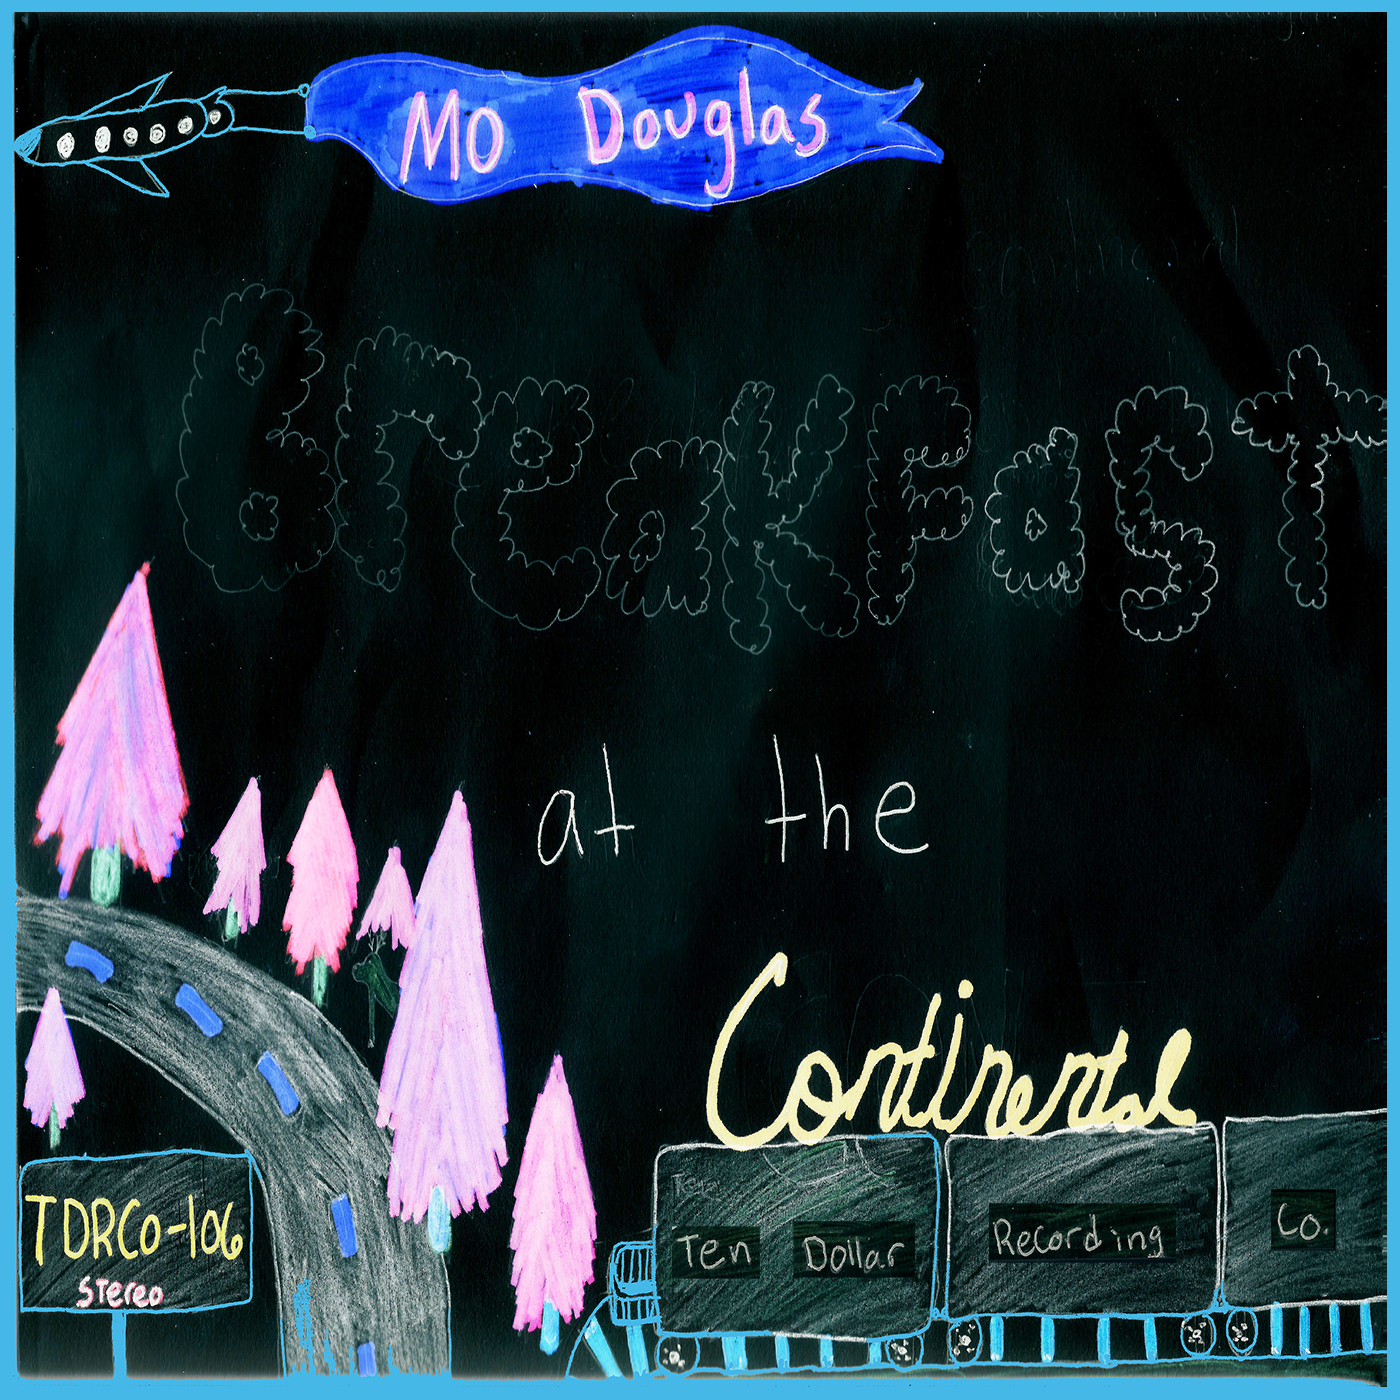 Mo Douglas - Breakfast at The Continental